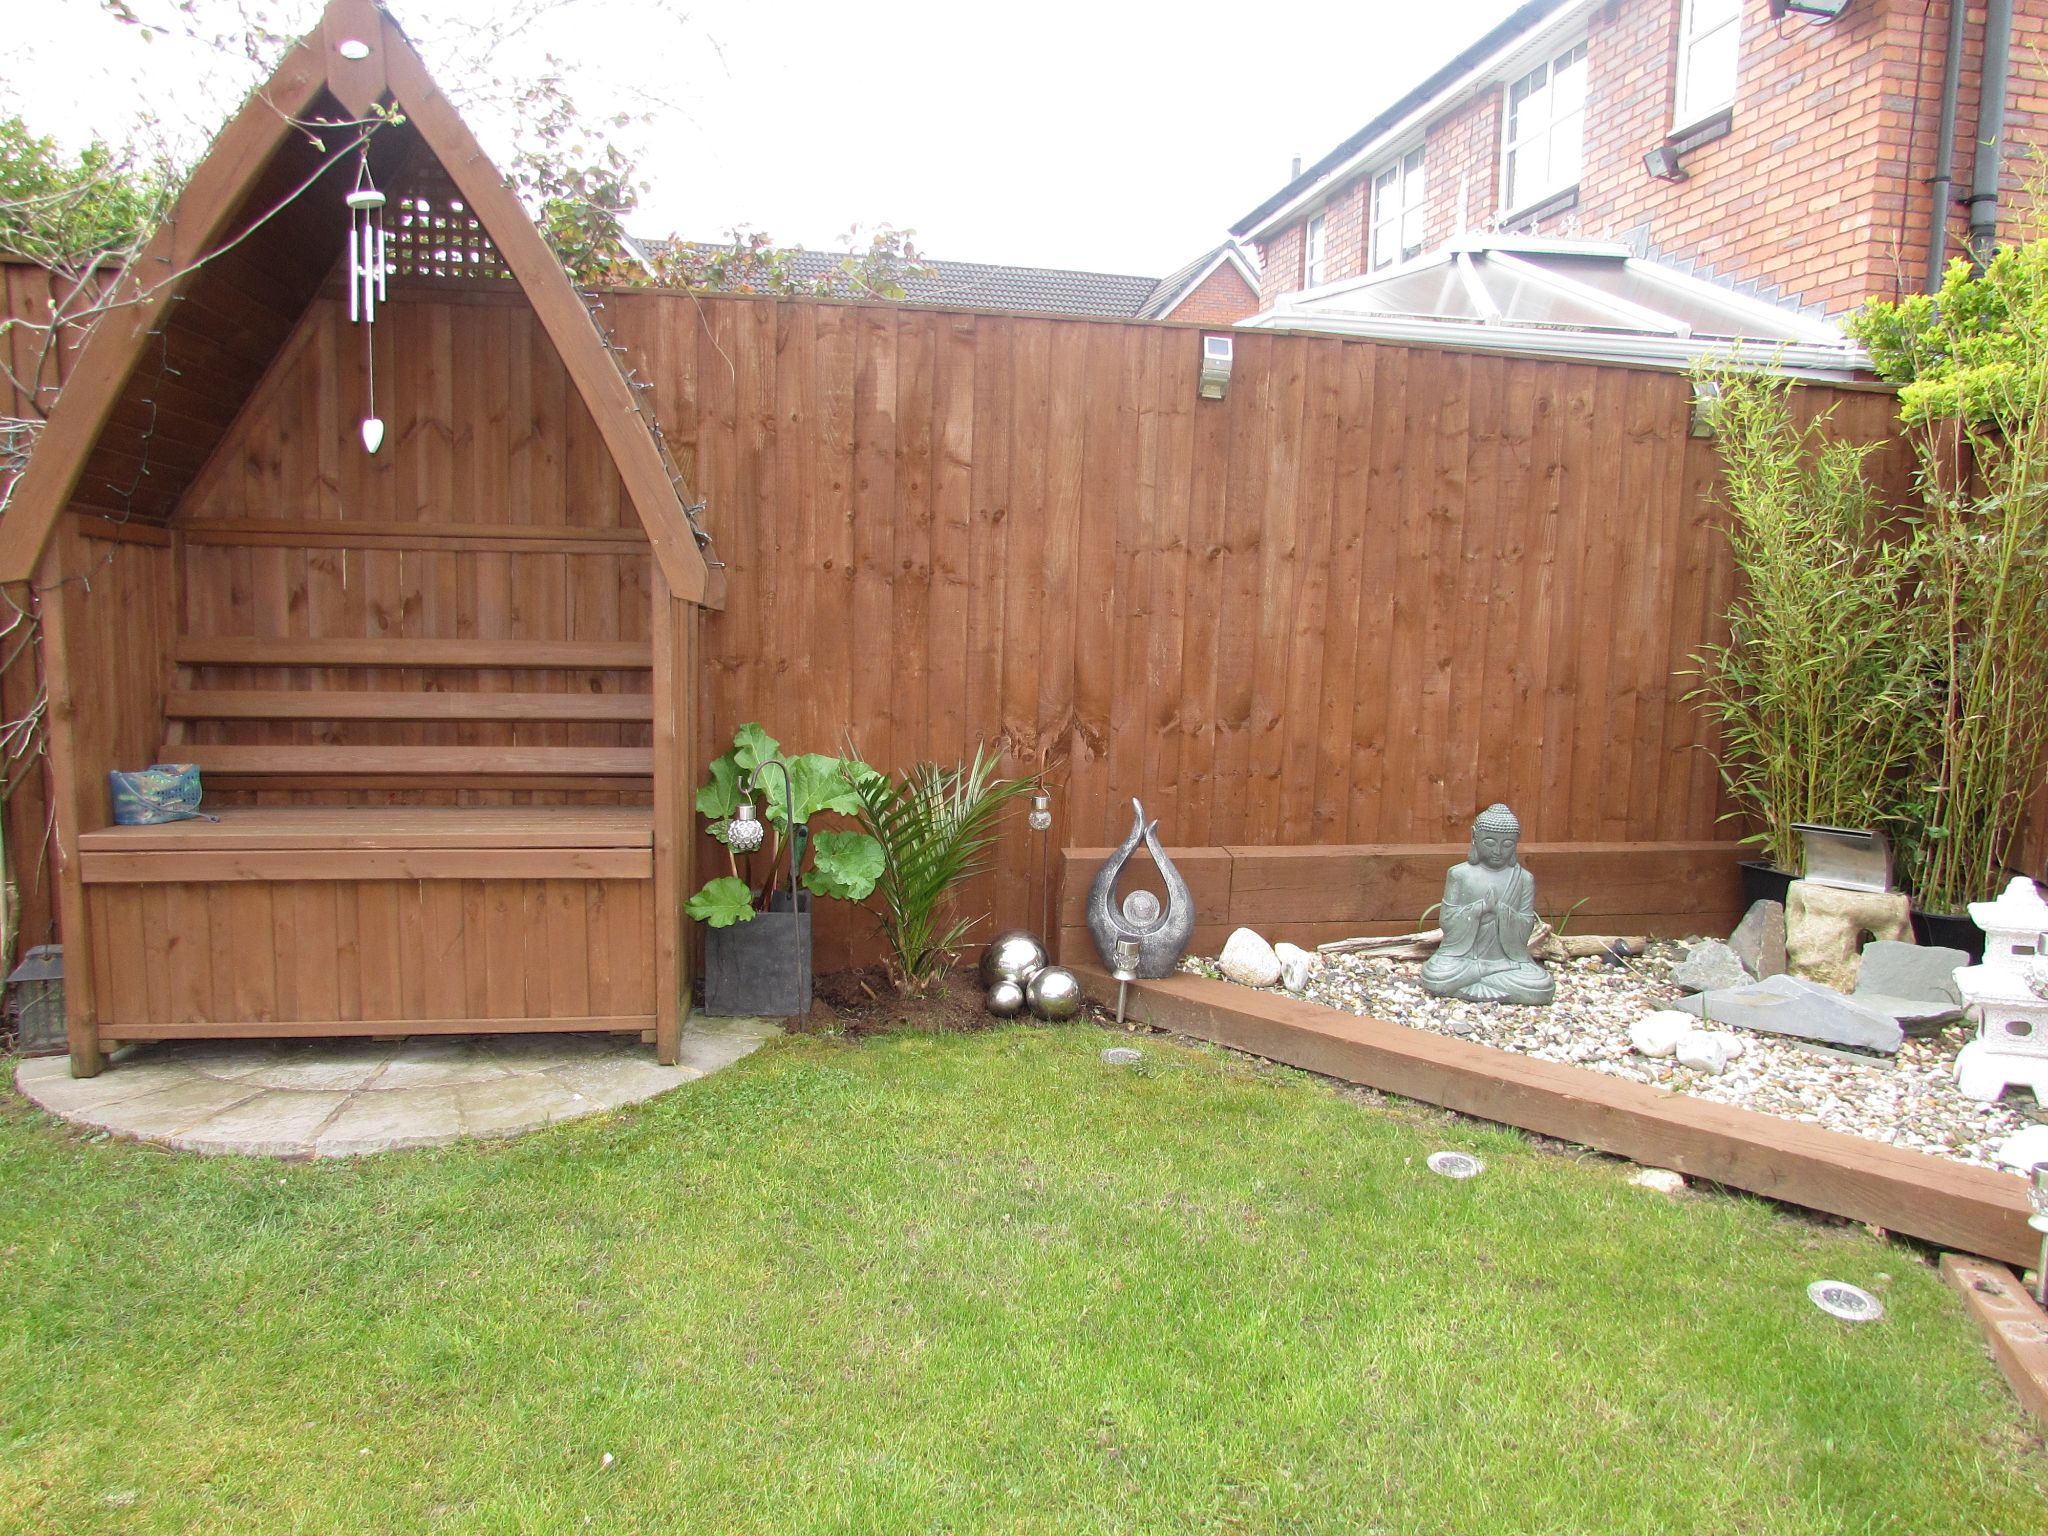 3 Bedroom Semi-detached House For Sale - Photograph 27